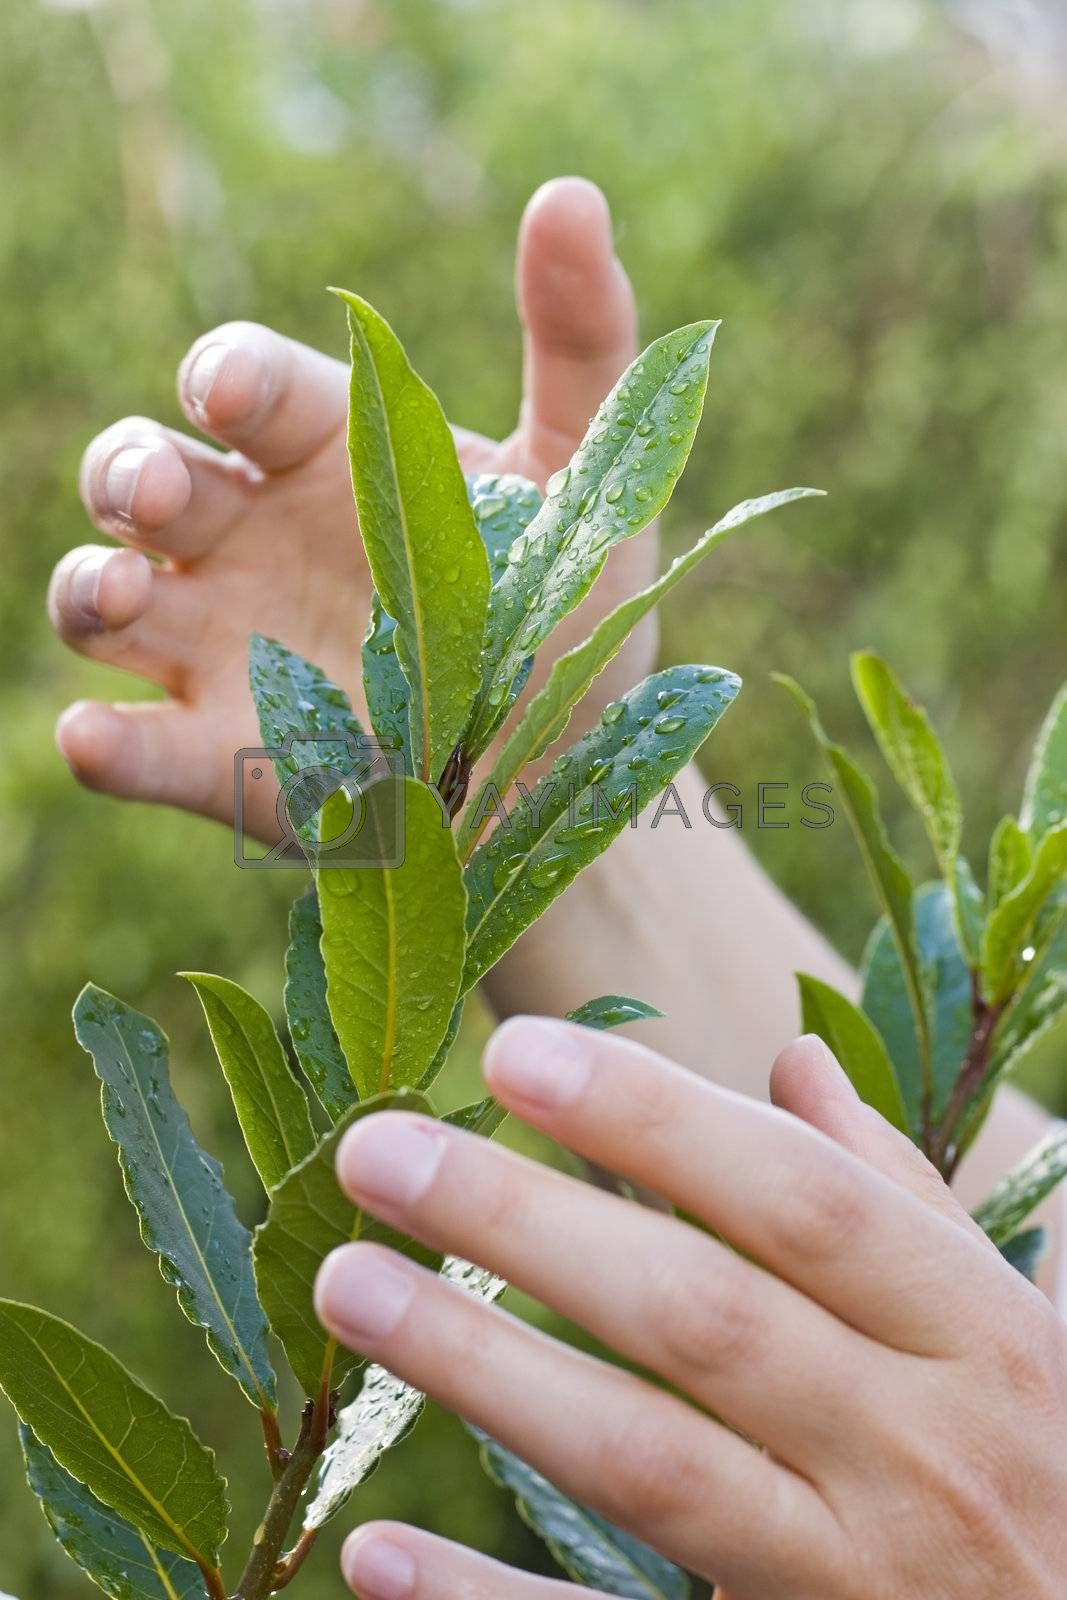 Female hands protecting a plant with waterdrops on the leaves